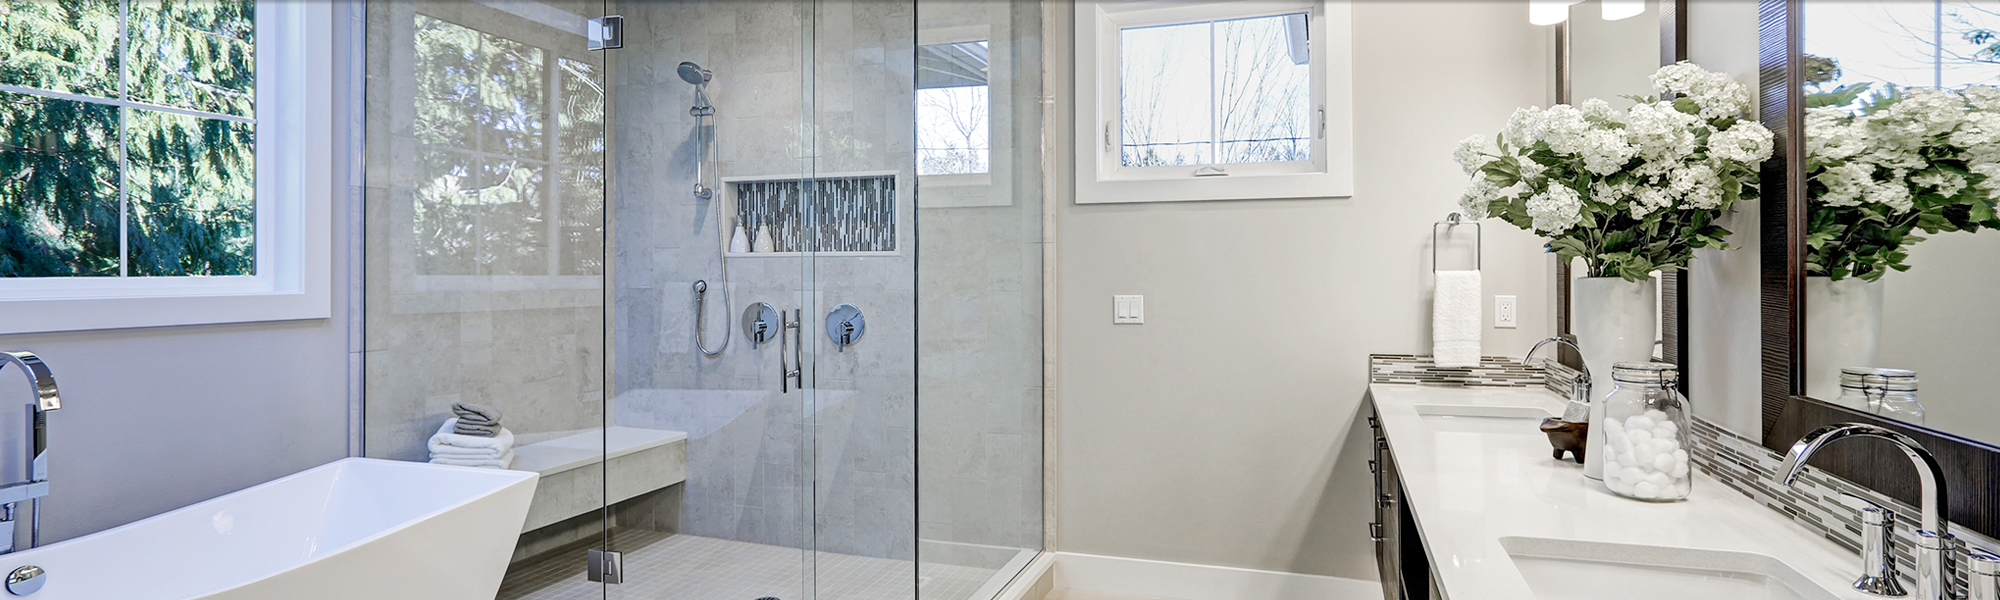 New Shower Doors in Riverside, CA